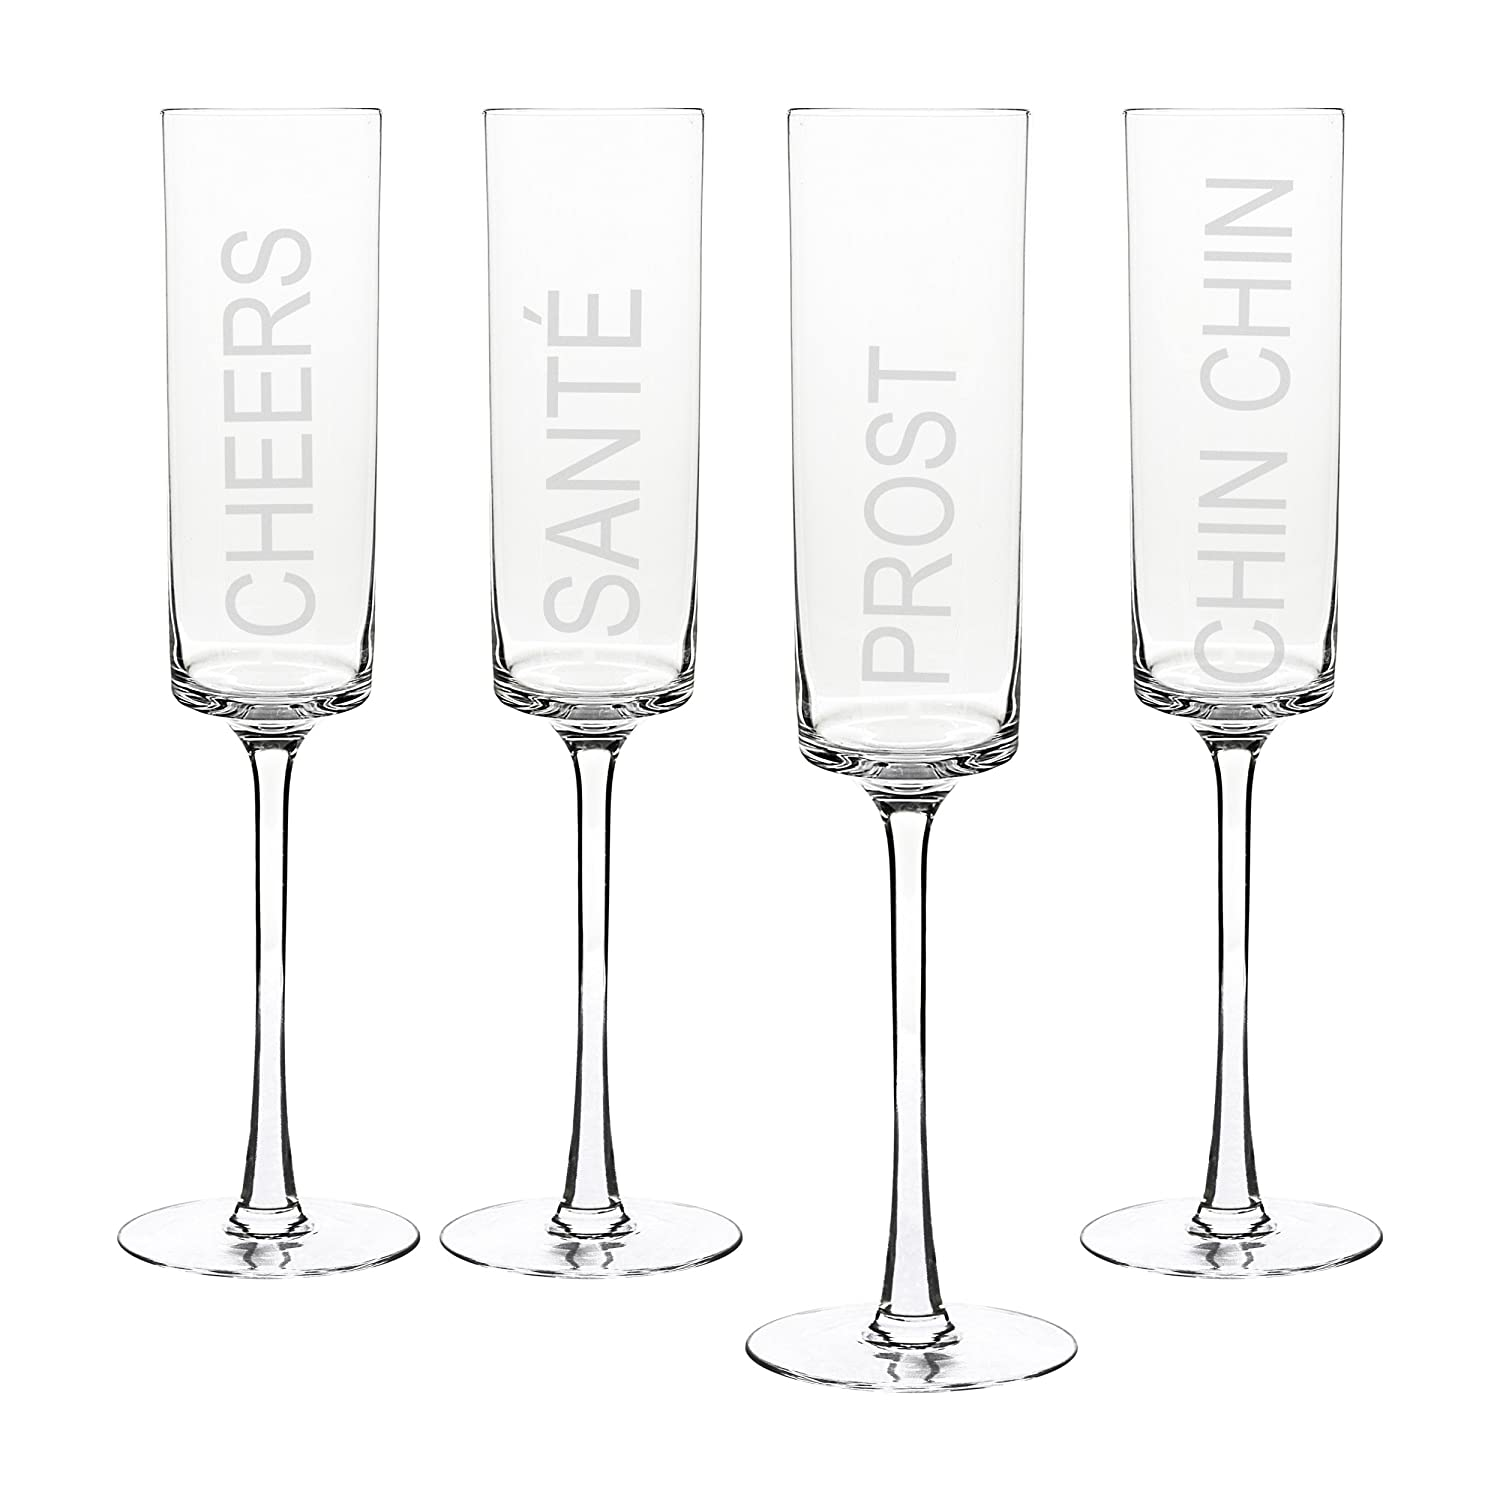 amazoncom  cathy's concepts cheers contemporary champagne flutes  - amazoncom  cathy's concepts cheers contemporary champagne flutes set of cheers champagne glasses champagne glasses